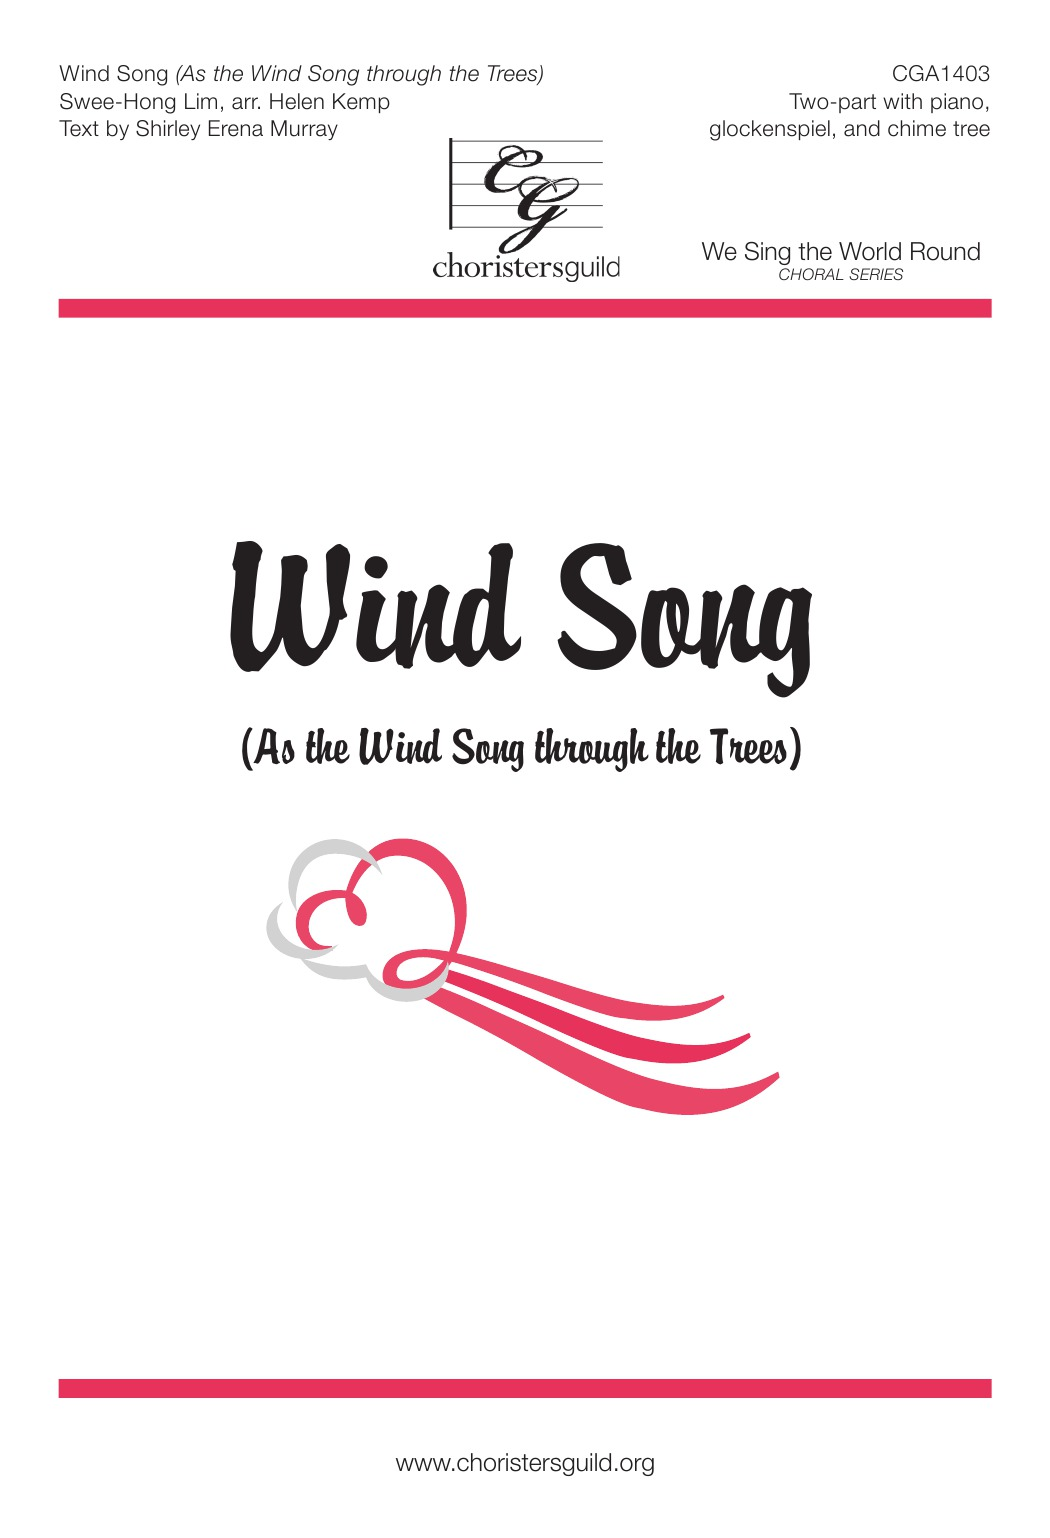 Wind Song (As the Wind through the Trees)